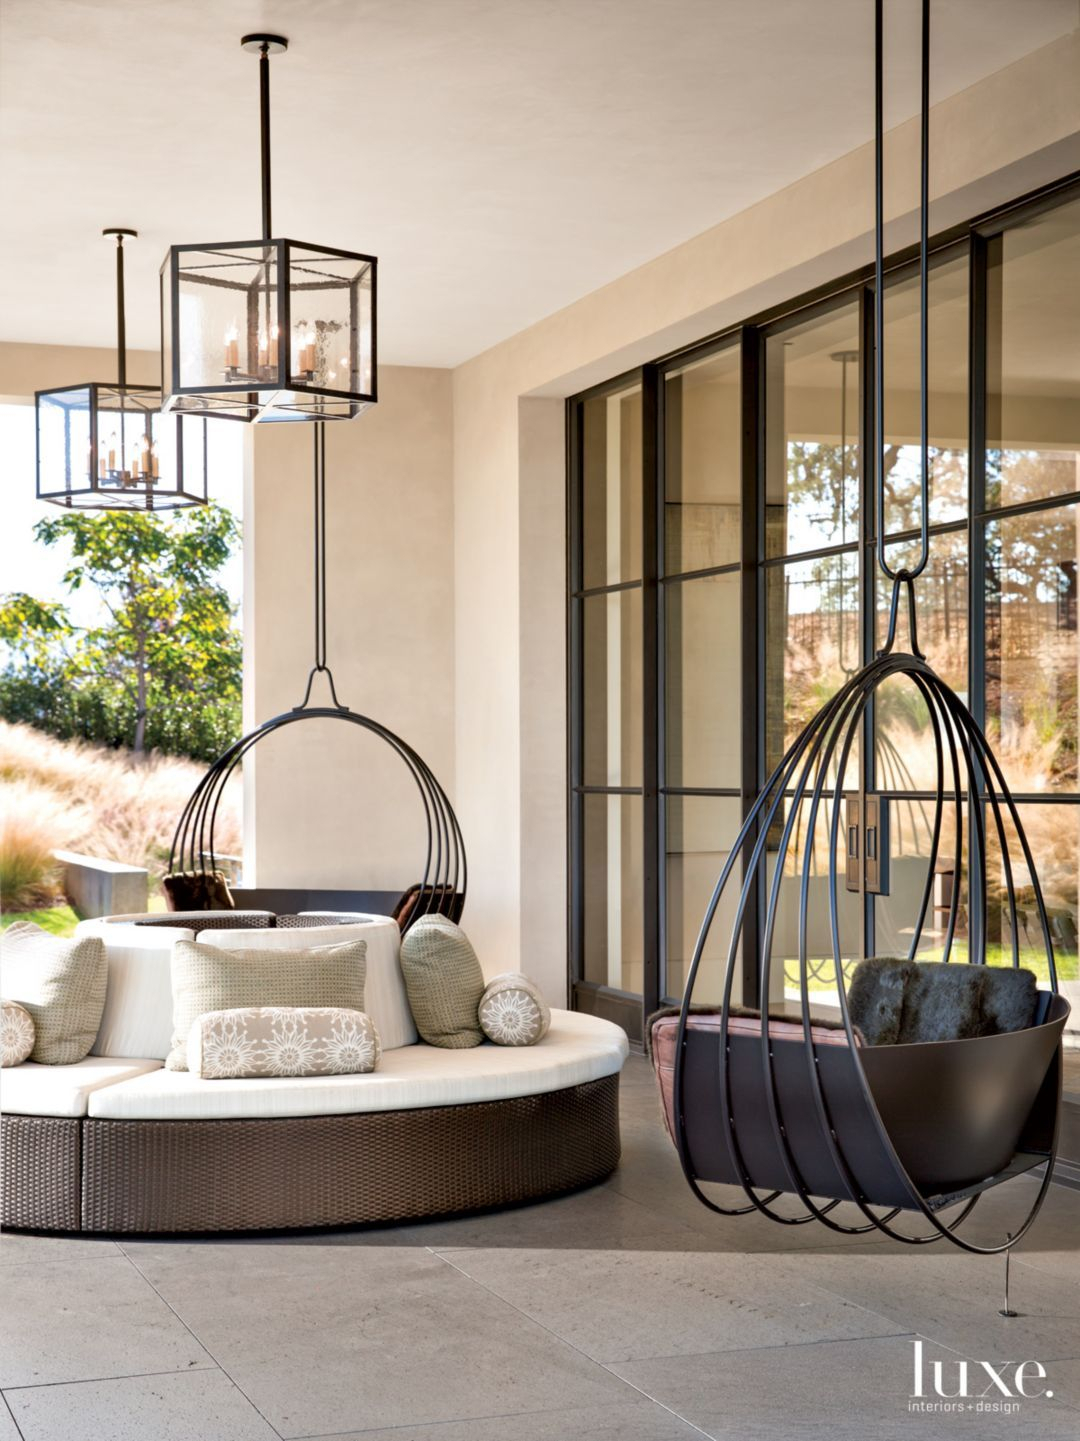 Modern Outdoor Seating From Top Like Seats That Twirl Around Intended For Lamp Outdoor Porch Swings (Photo 2 of 25)